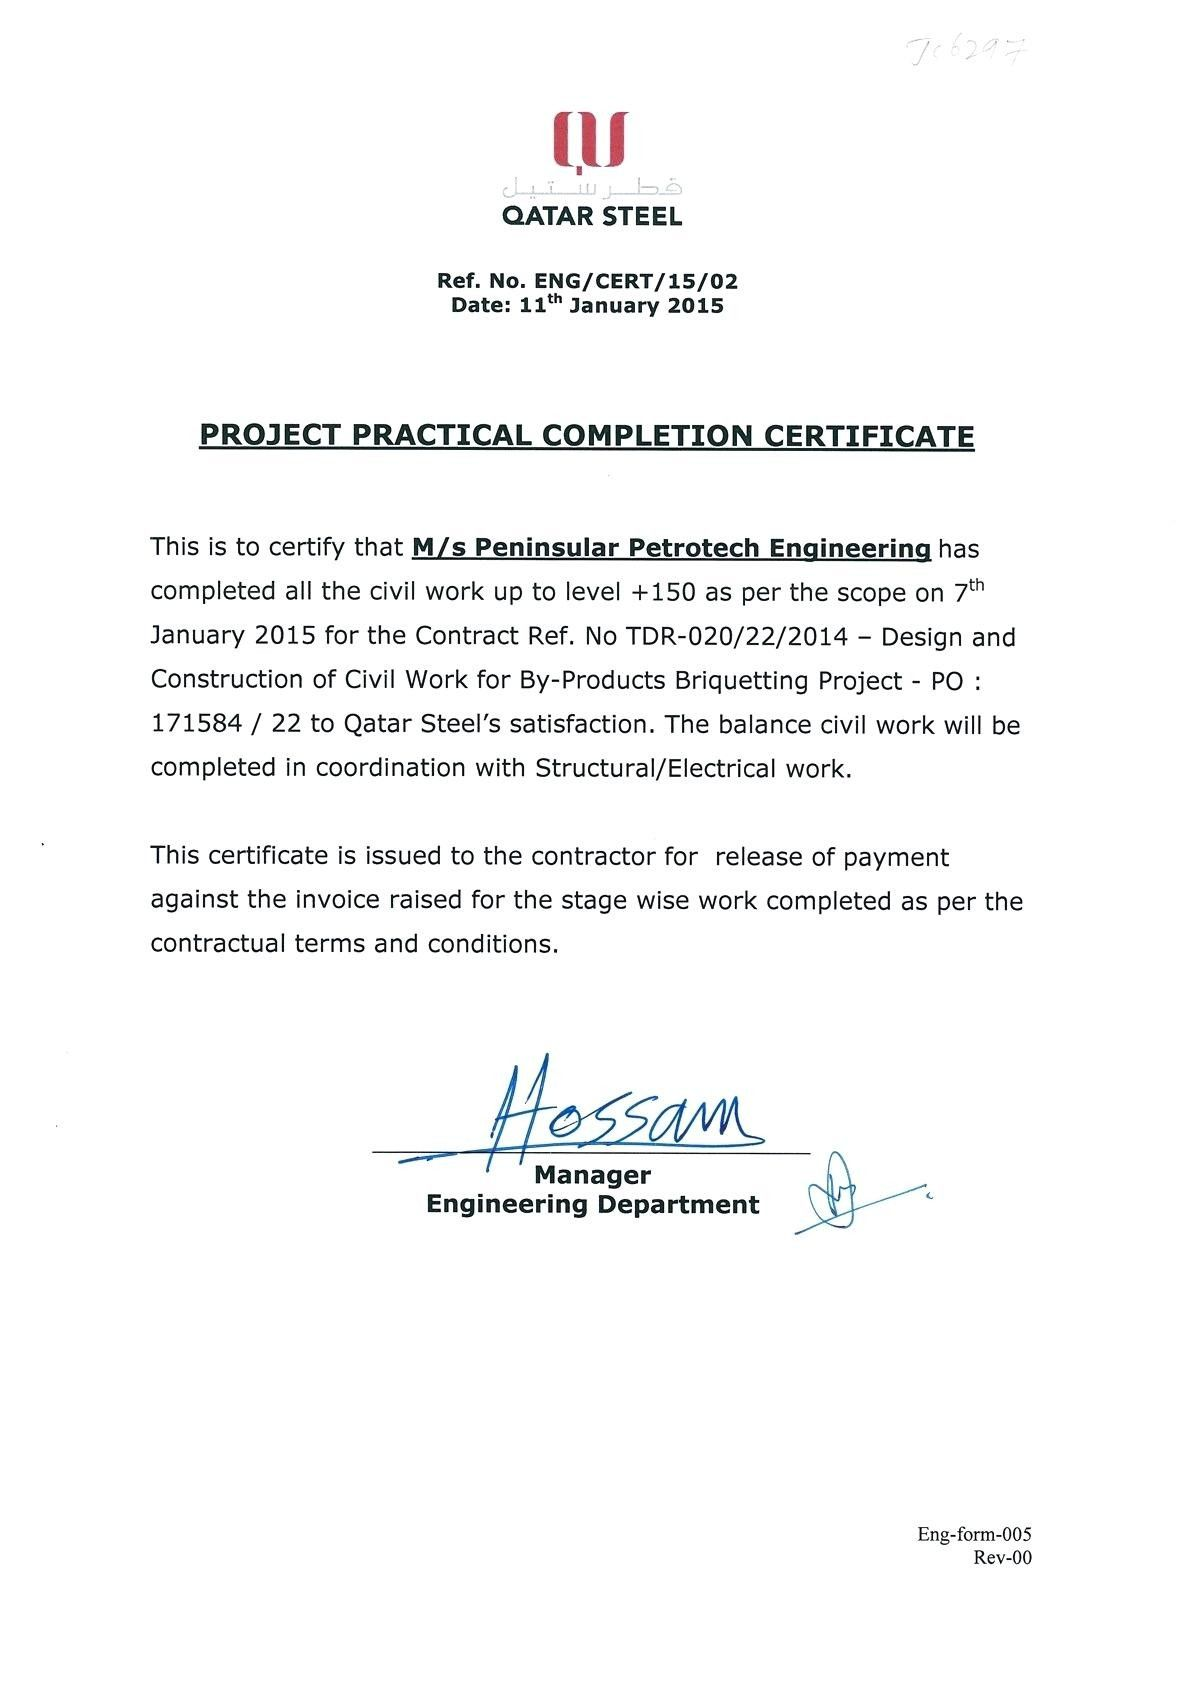 The Amazing 028 Construction Work Order Template Completion Certificate For In 2020 Certificate Of Completion Template Certificate Of Completion Certificate Templates